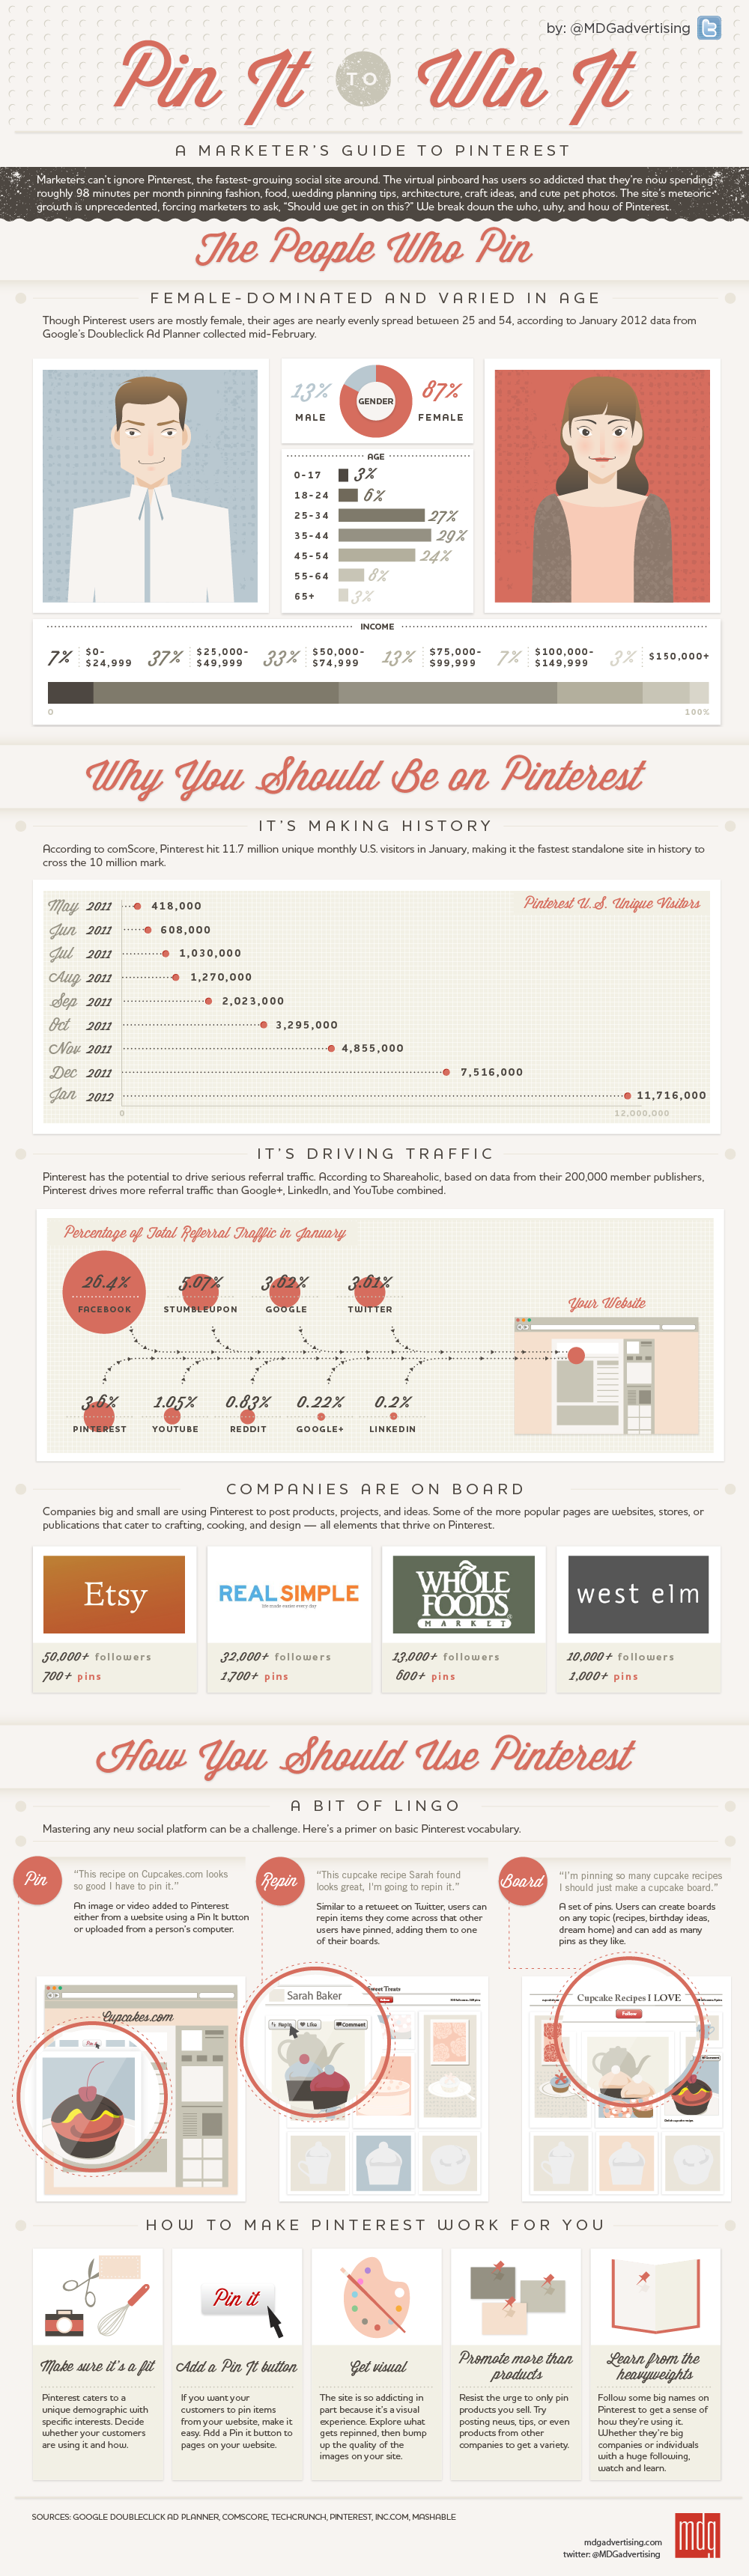 Marketers-Guide-To-Pinterest-infographic